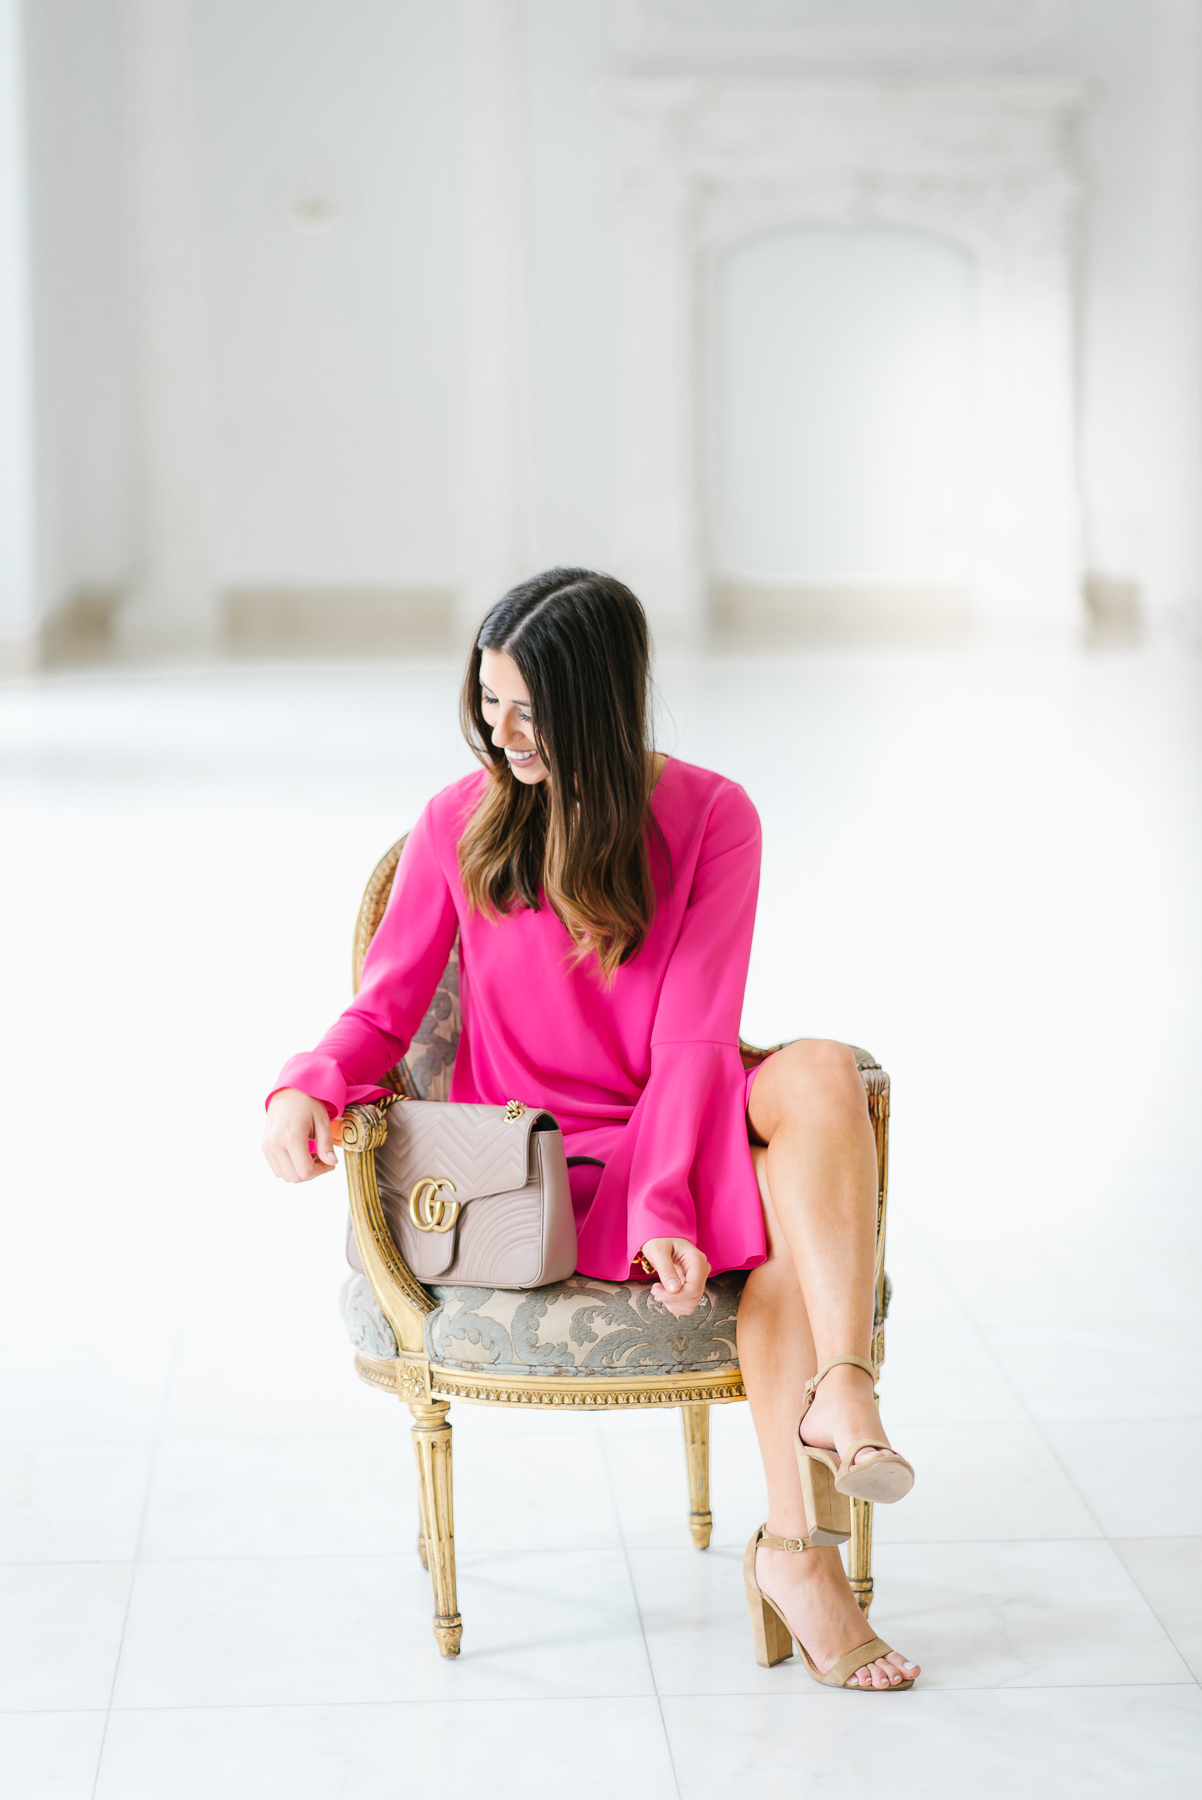 Dress Up Buttercup // A Houston-based fashion and inspiration blog developed to daily inspire your own personal style by Dede Raad | Two Easter Dresses for $55